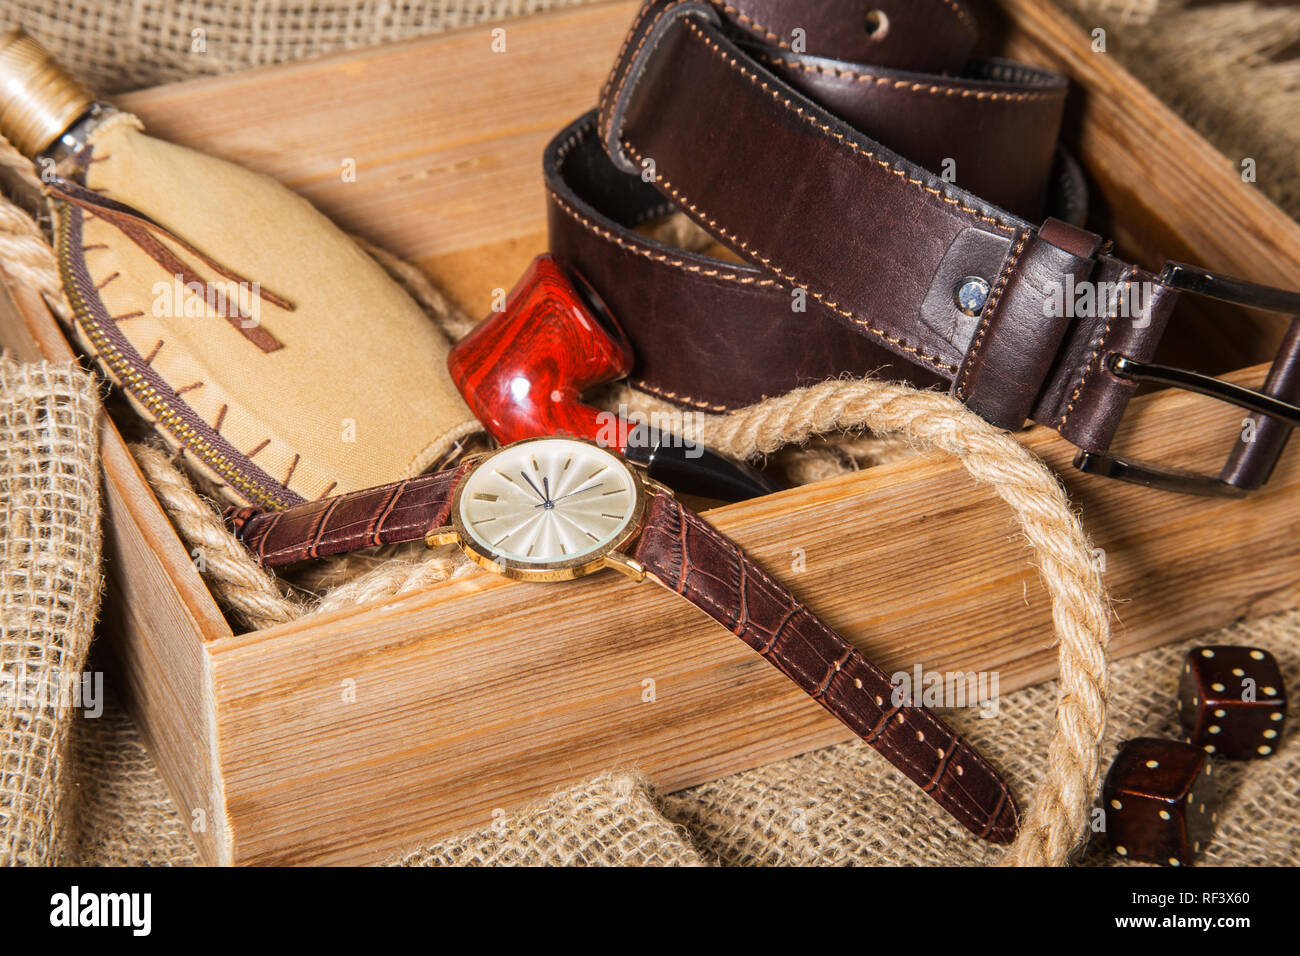 Men's accessories with brown leather belt, sunglasses, watch, smoking pipe and bottle with perfume on rustic background. - Stock Image